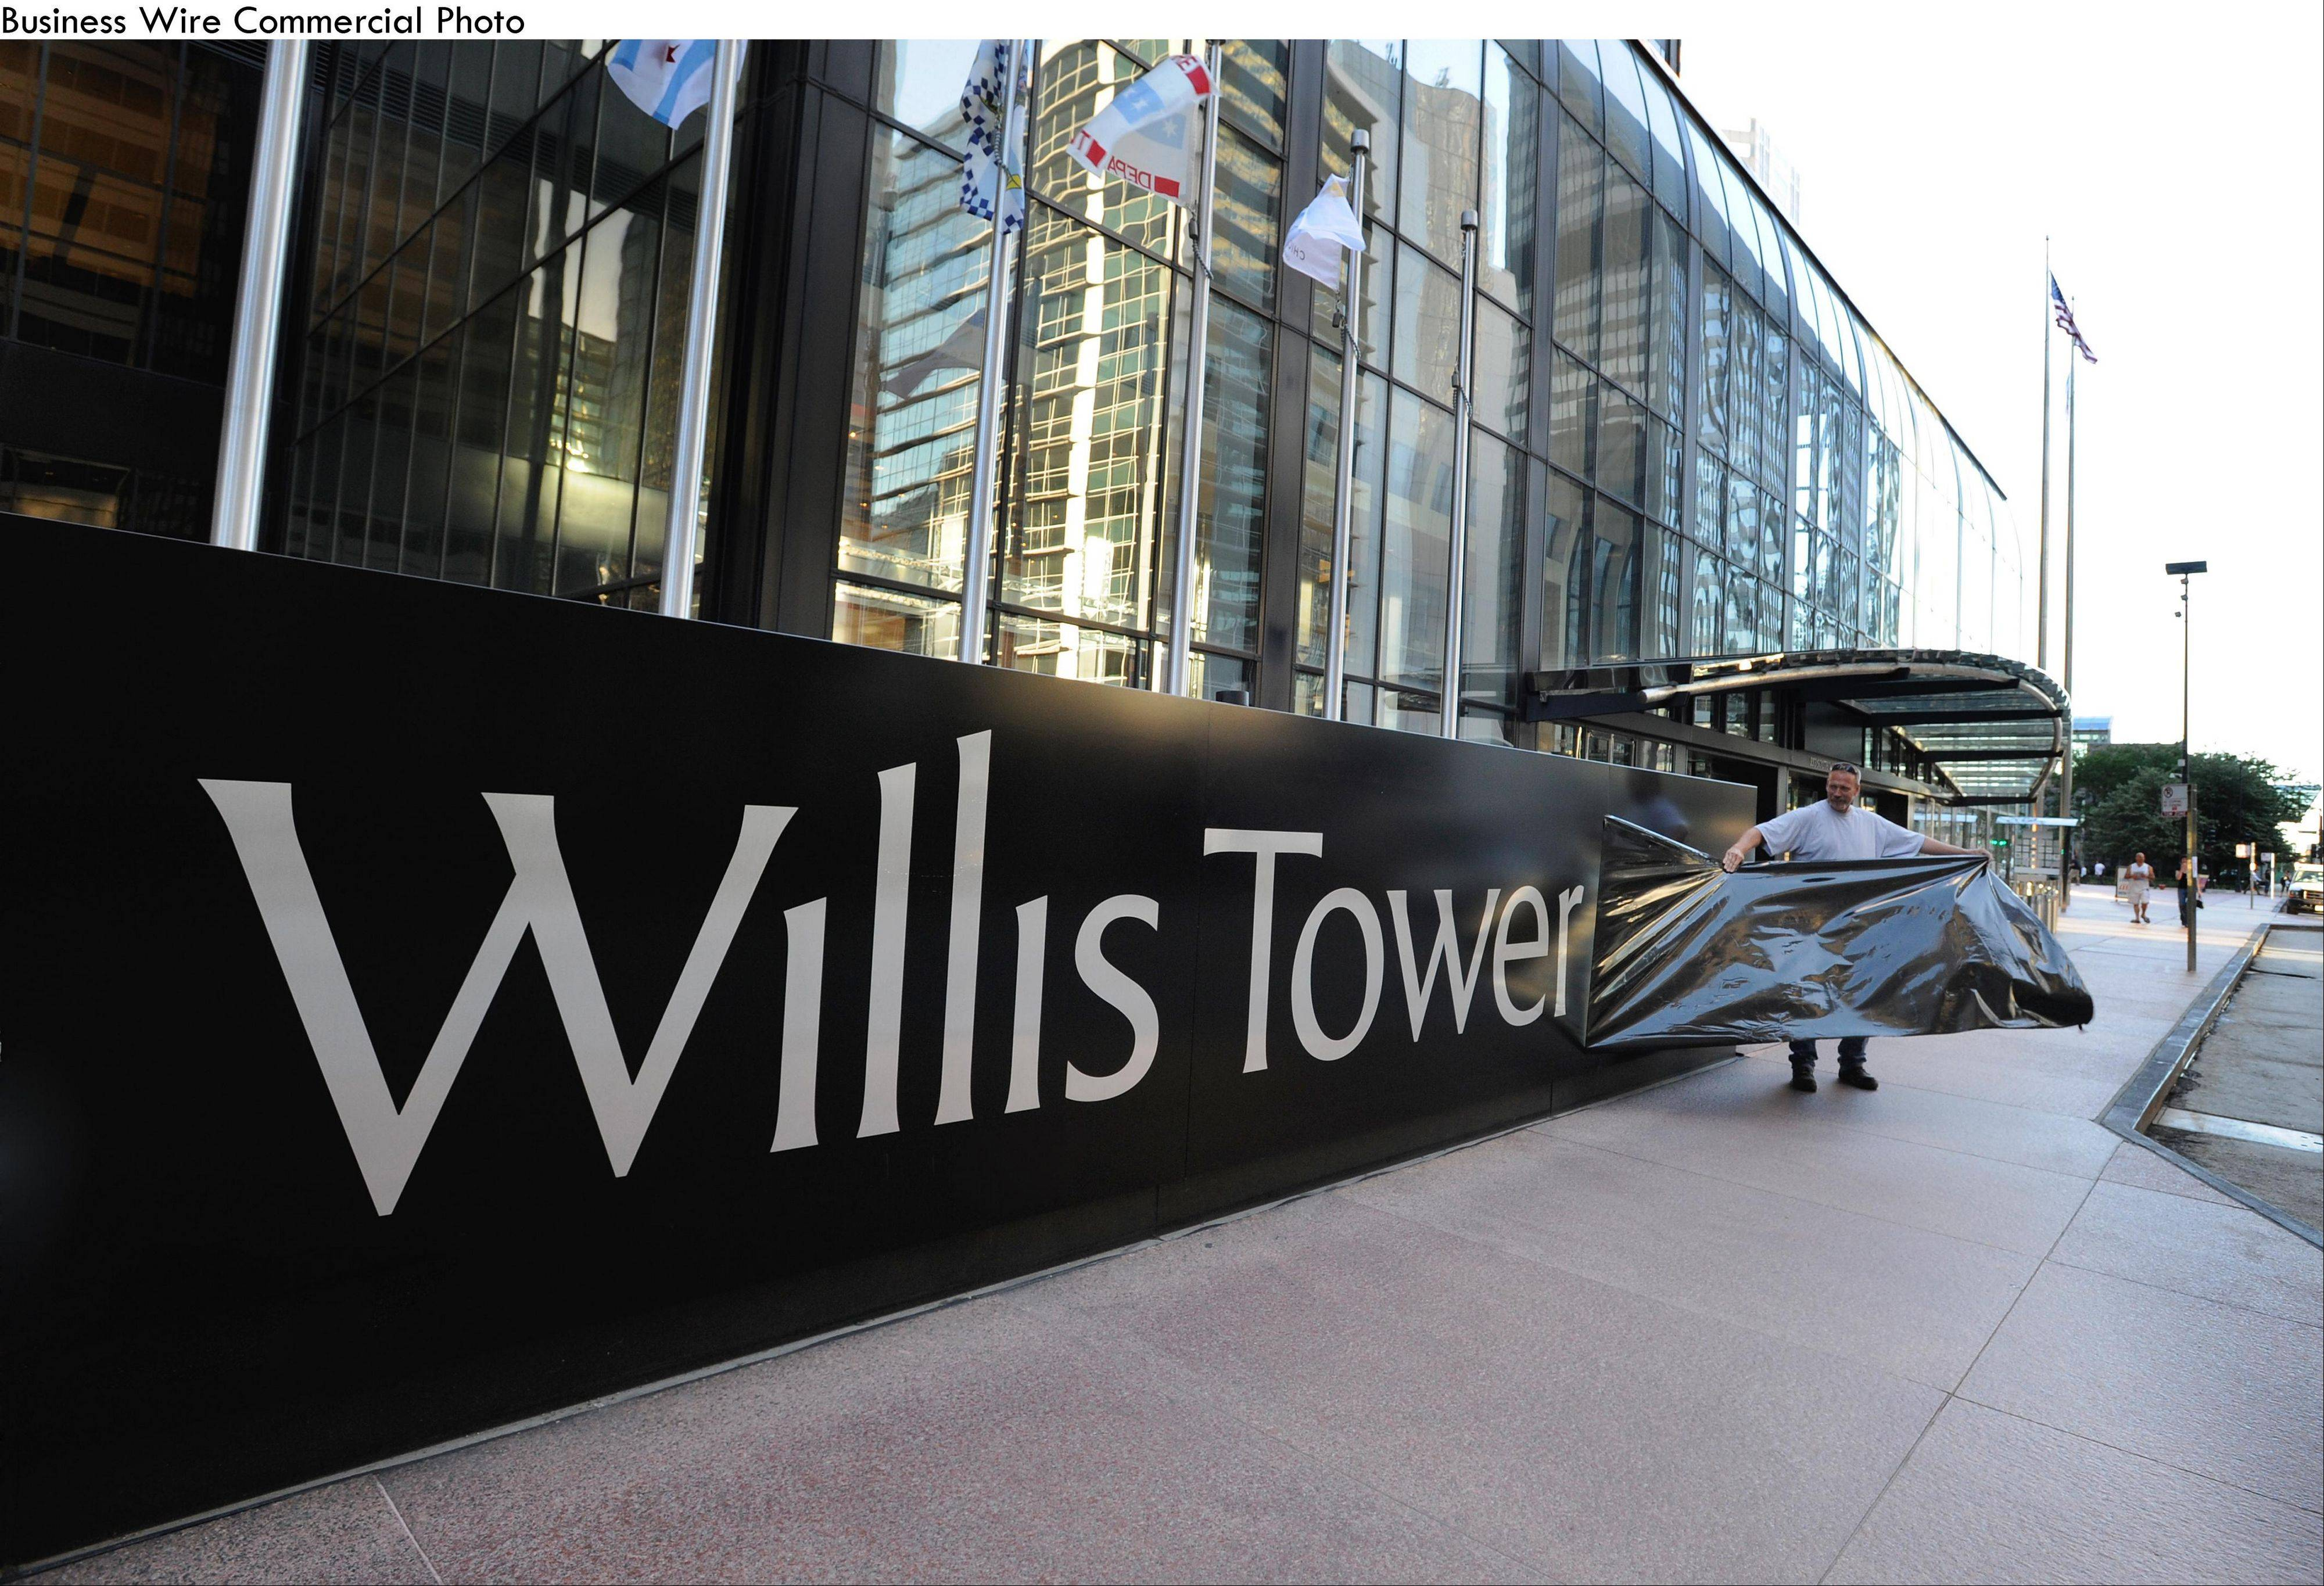 Mayor Rahm Emanuel�s office said Monday morning that United also will forgo nearly $10 million in additional city grant money because it is leaving the site and consolidating at Willis Tower.